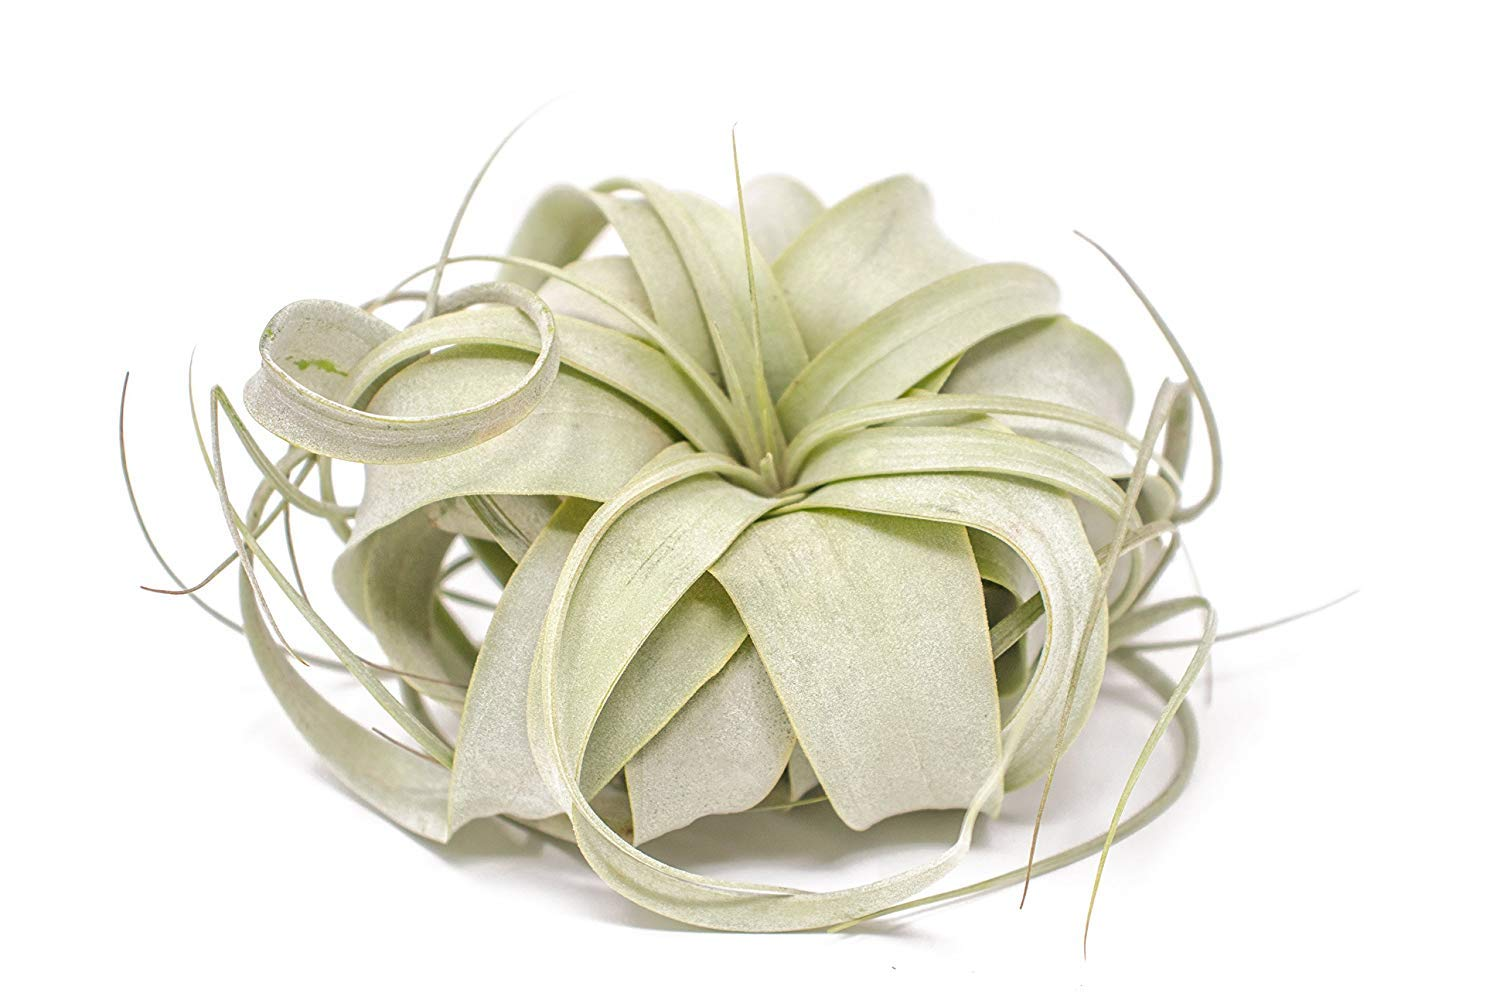 1 Tillandsia Xerographica Air Plant Live Tropical Houseplant Decor for Terrarium Holder Wedding Favors Large Exotic Airplant by Plants for Pets